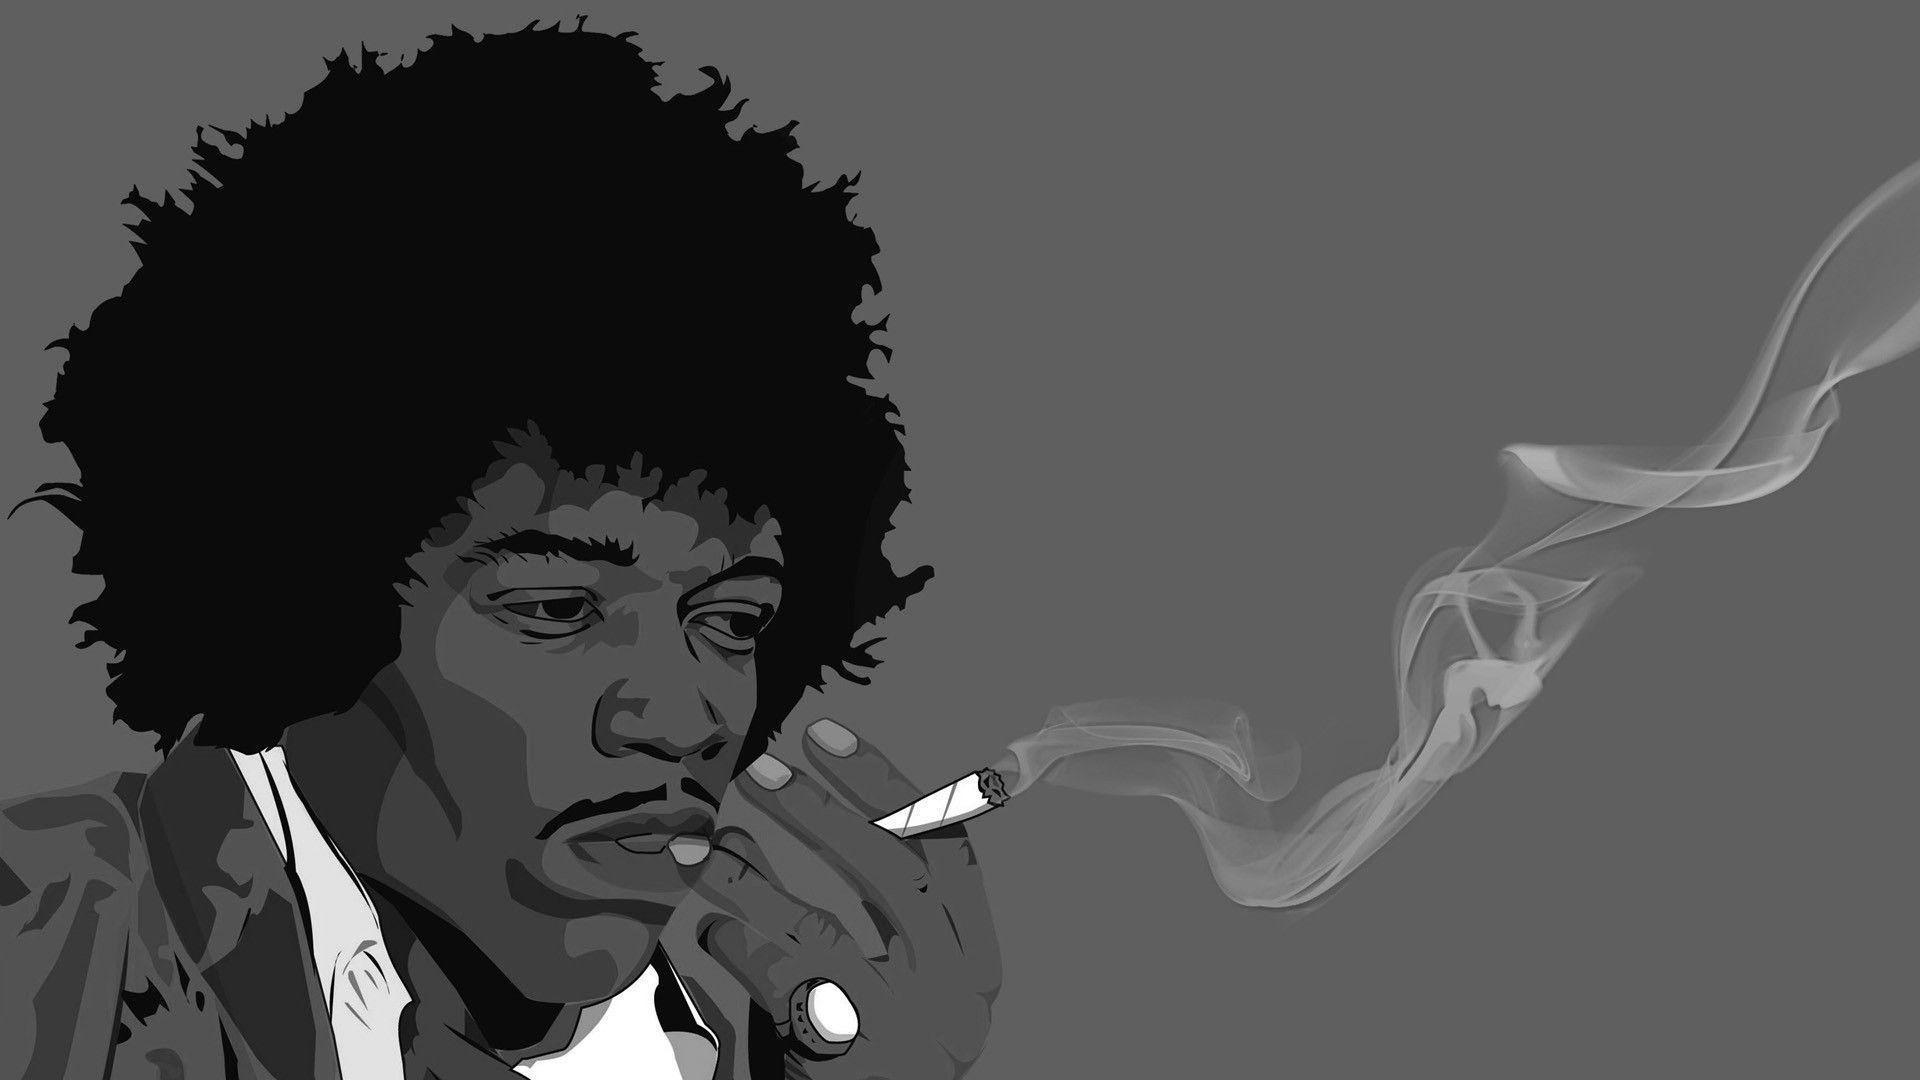 Jimi hendrix wallpapers wallpaper cave 53 jimi hendrix wallpapers jimi hendrix backgrounds page 2 altavistaventures Images